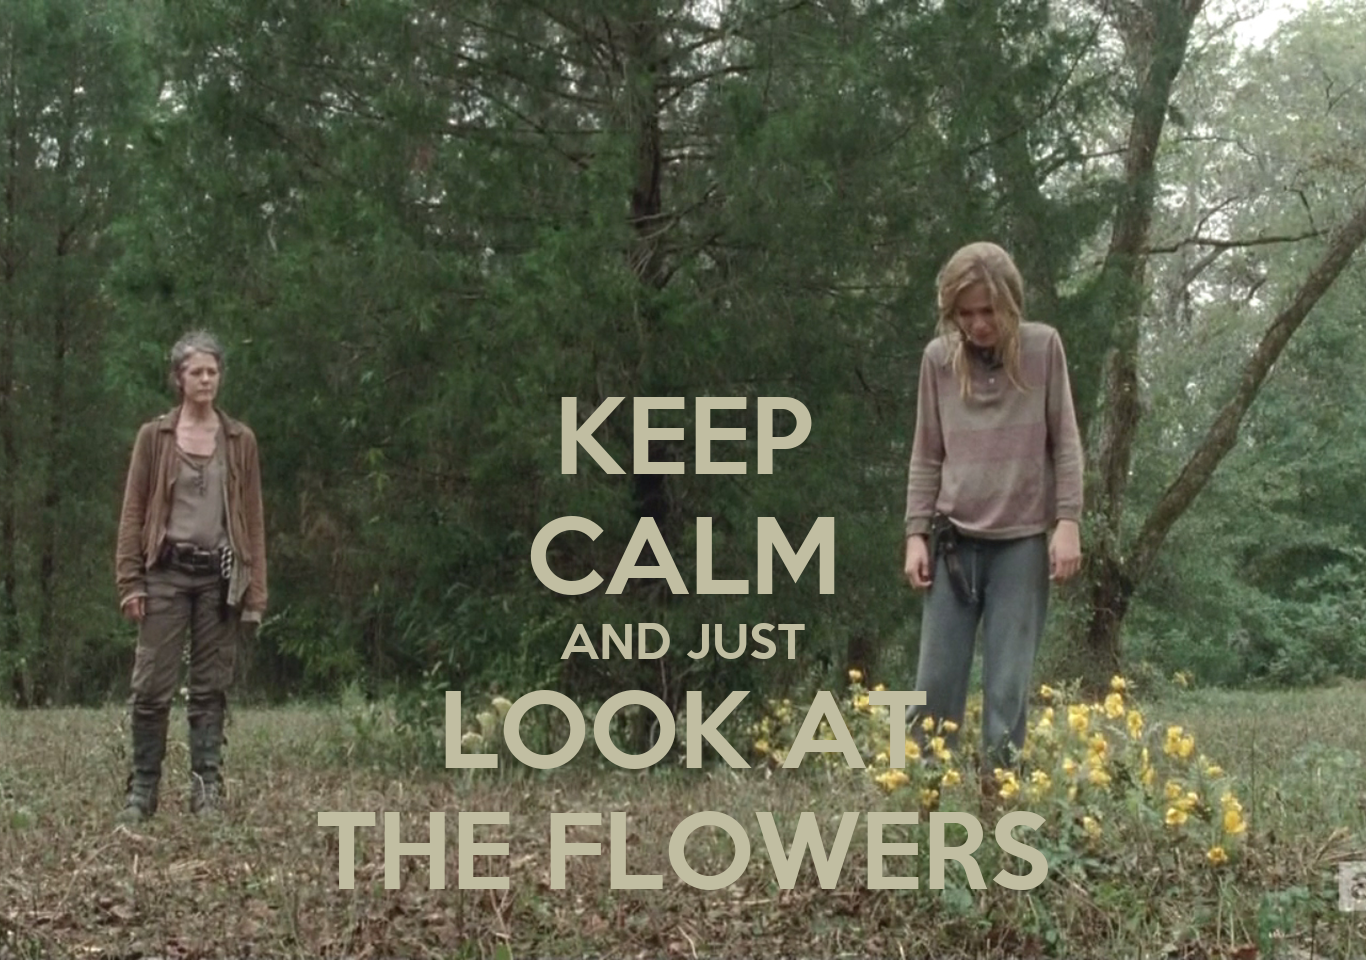 KEEP CALM AND JUST LOOK AT THE FLOWERS Poster Joana Freitas